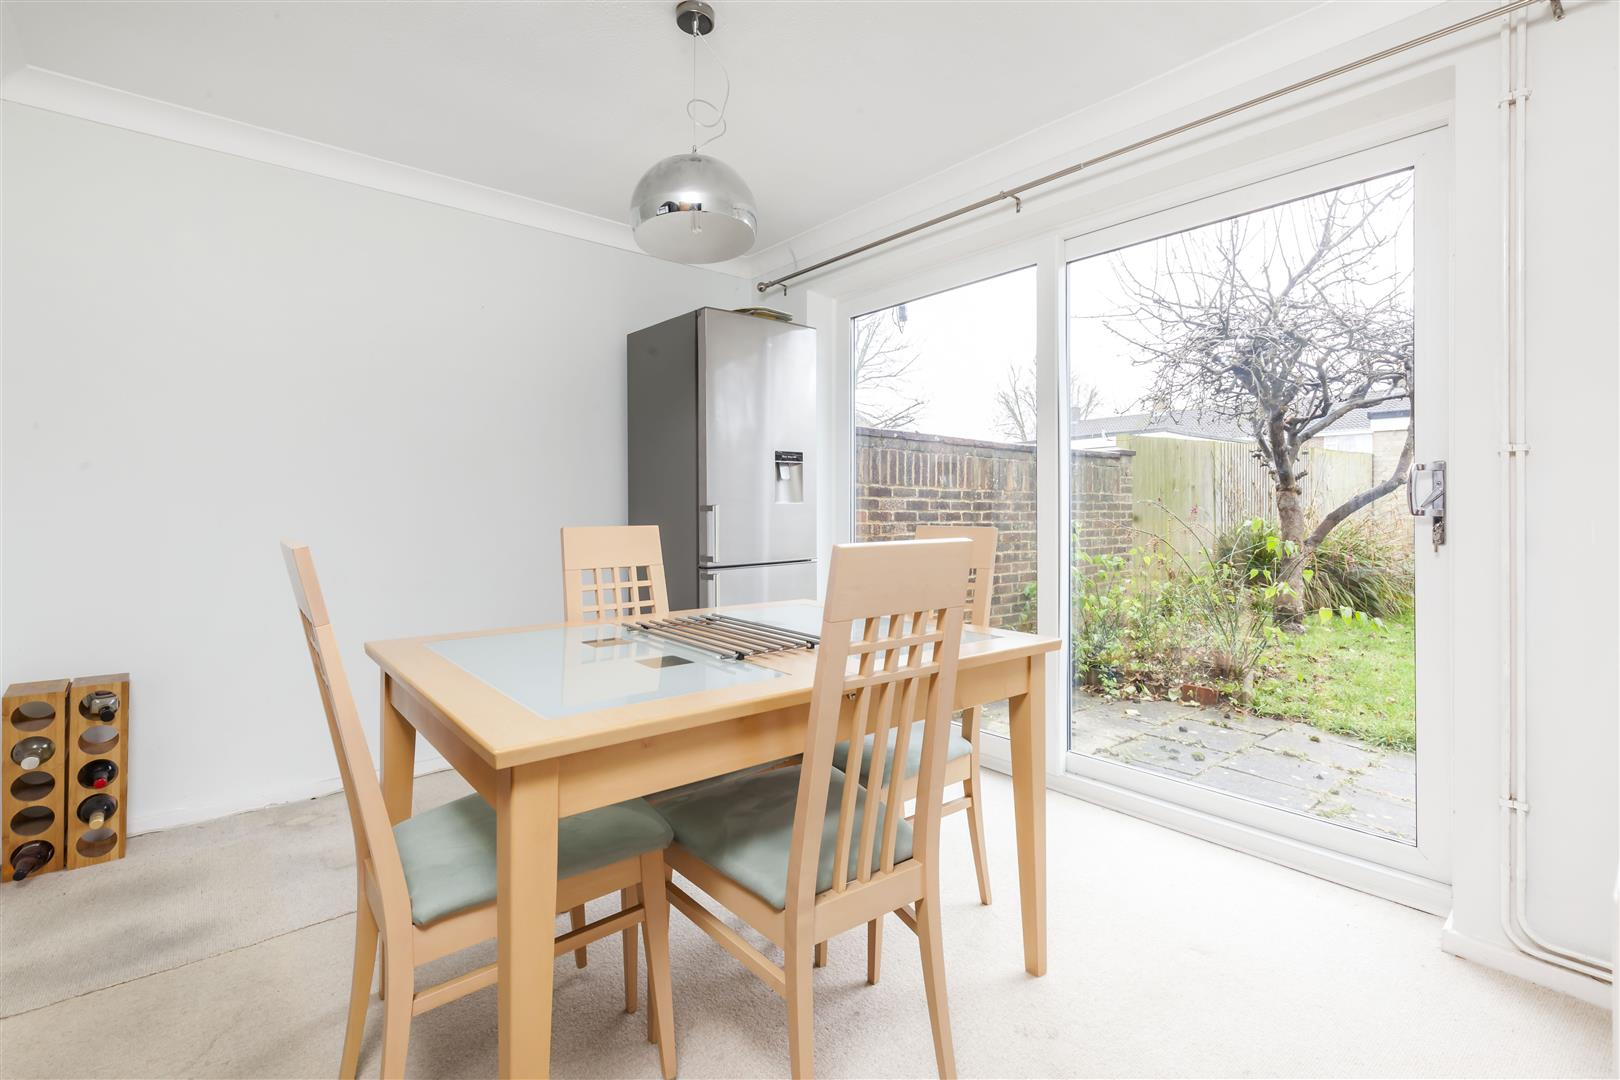 3 bed terraced-house for sale in Furnace Drive, Crawley  - Property Image 5